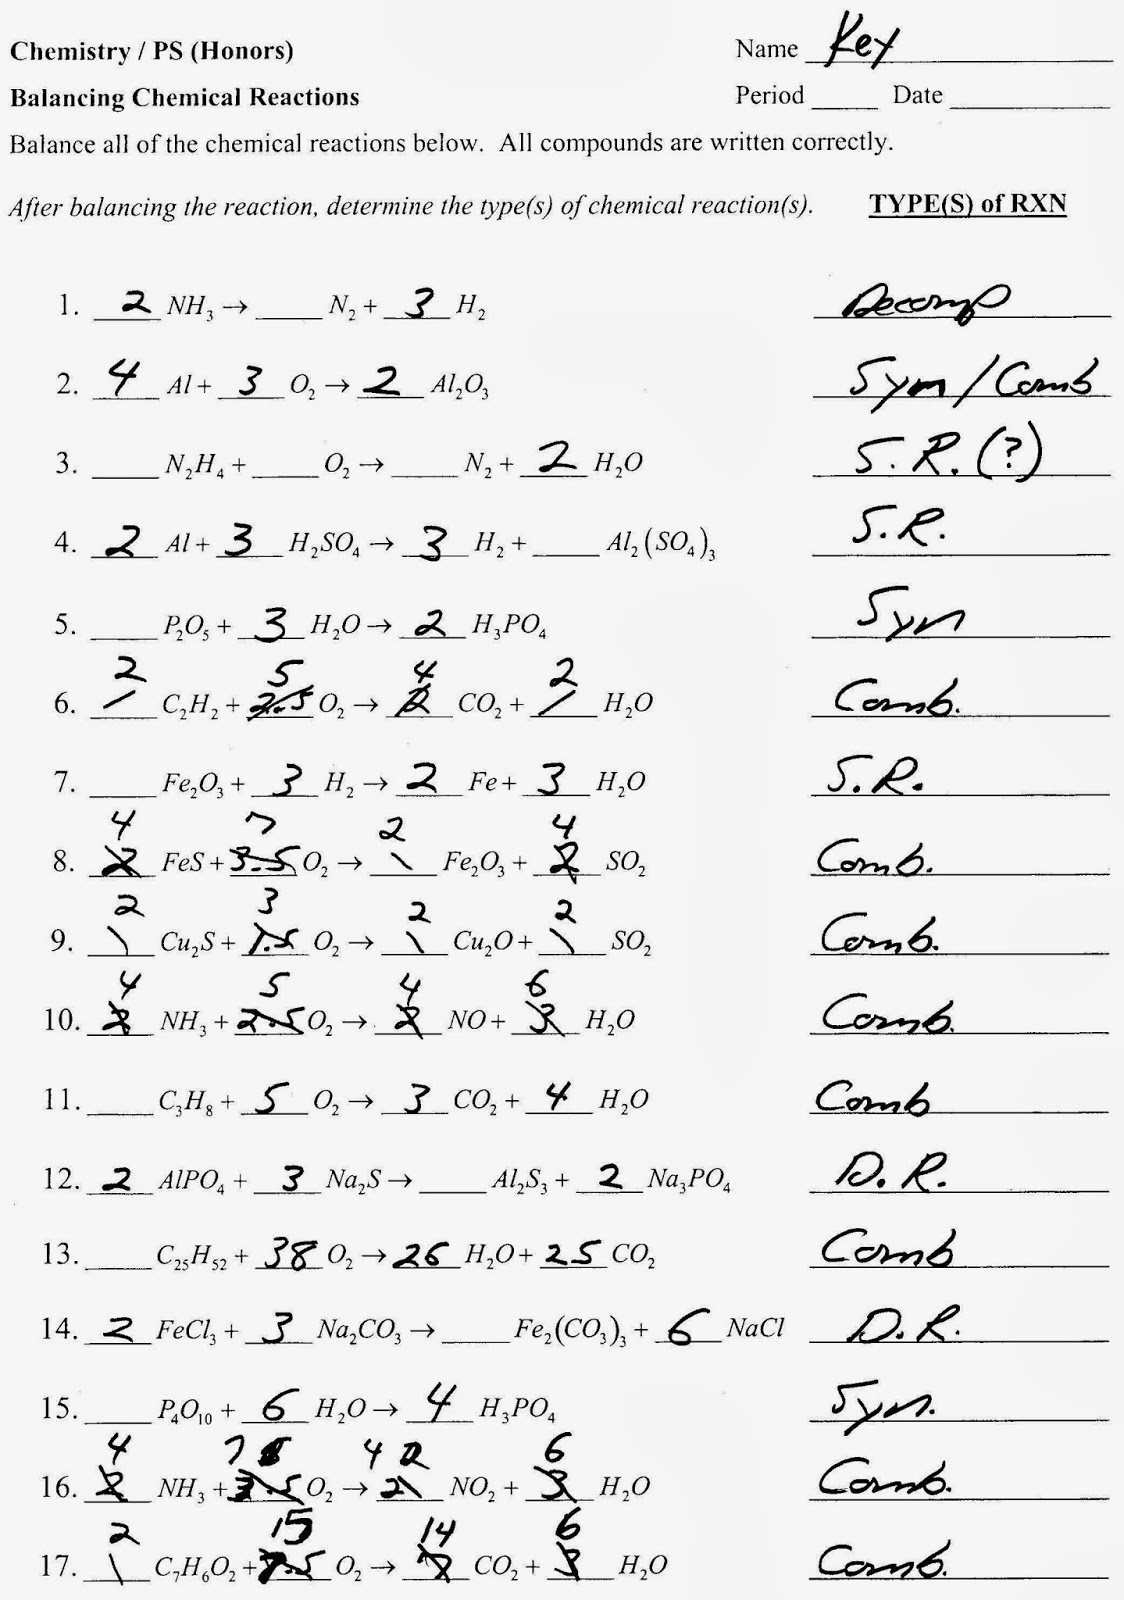 Aldiablosus  Personable Balancing Chemical Equations Worksheets Balancing Chemical  With Marvelous Balancing Chemical Equations Worksheet Answer Key On Chemistry Double With Divine Math Division Worksheets For Th Grade Also Super Teacher Worksheets Grade  In Addition English Grammar Free Worksheets And Free Ordinal Number Worksheets As Well As Array Worksheets Grade  Additionally Suffix Tion Worksheet From Letstalkhiphopus With Aldiablosus  Marvelous Balancing Chemical Equations Worksheets Balancing Chemical  With Divine Balancing Chemical Equations Worksheet Answer Key On Chemistry Double And Personable Math Division Worksheets For Th Grade Also Super Teacher Worksheets Grade  In Addition English Grammar Free Worksheets From Letstalkhiphopus